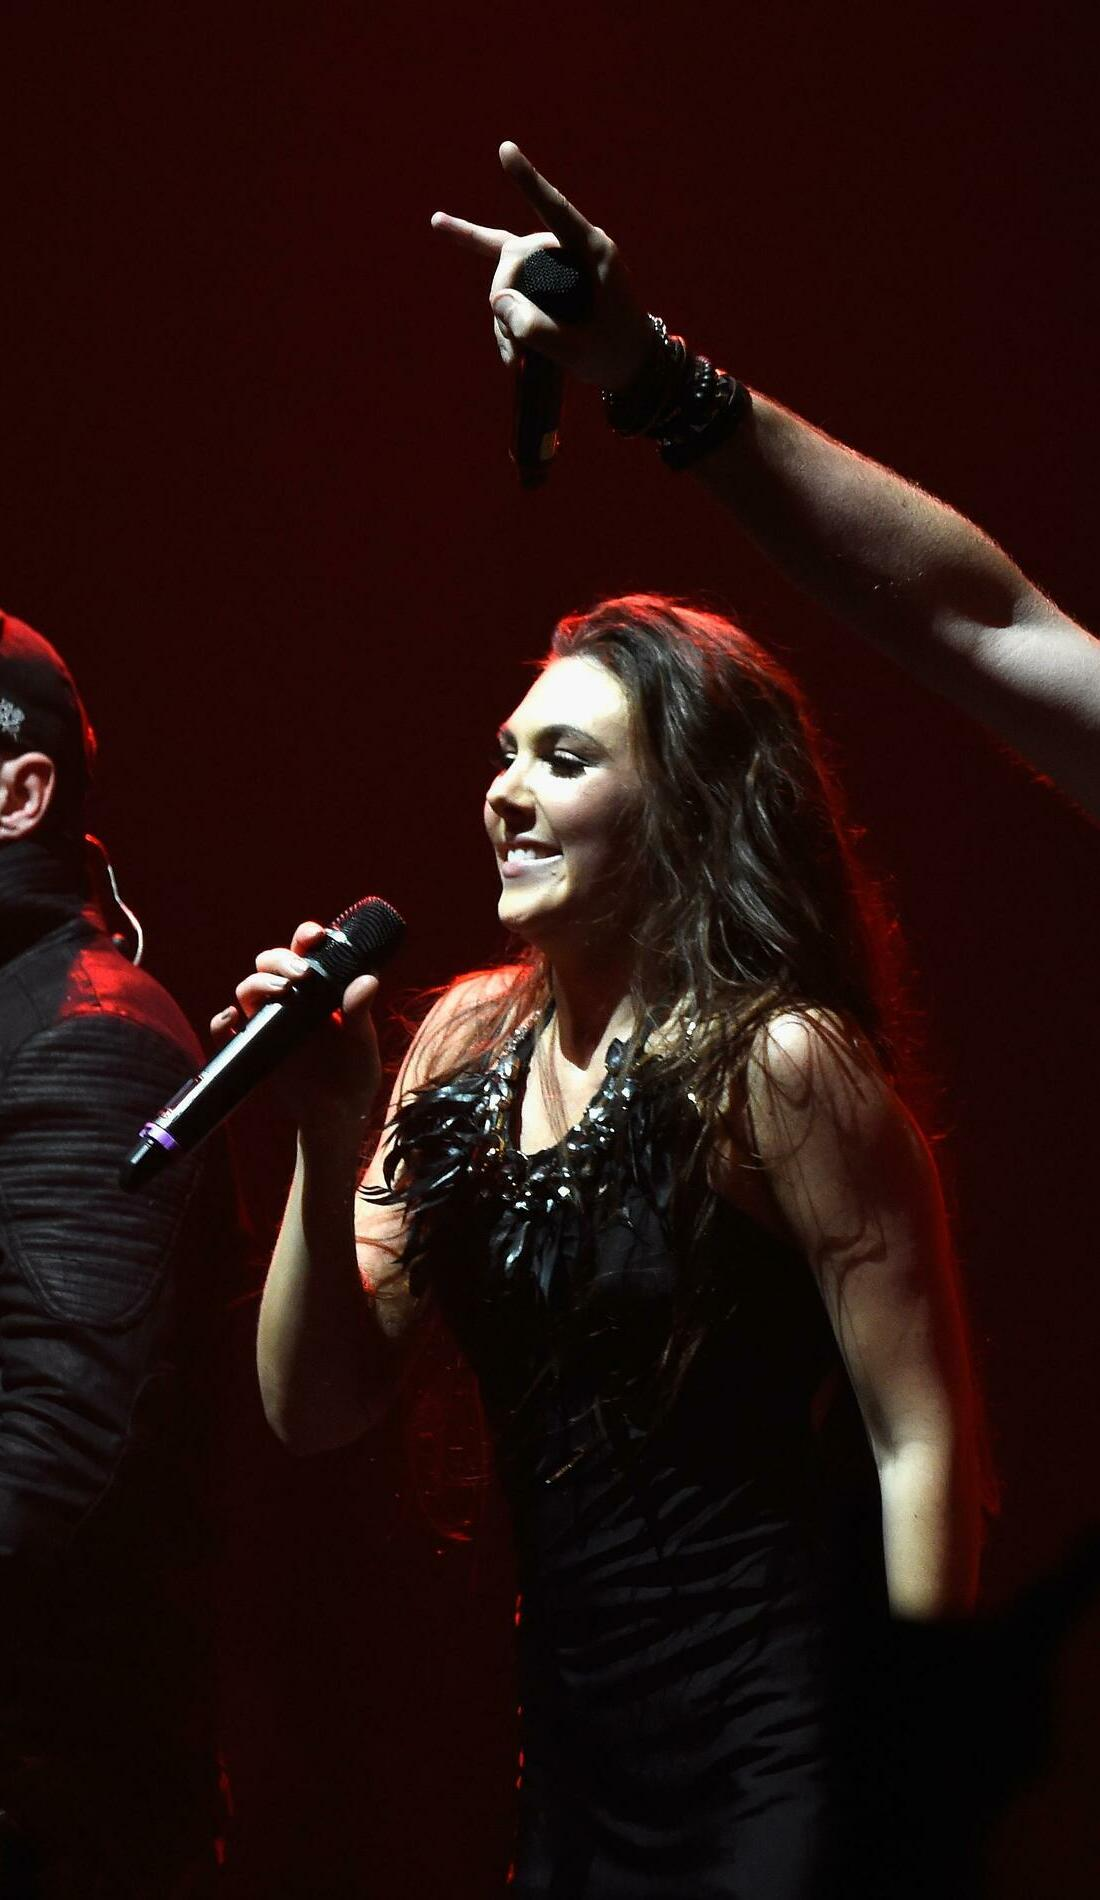 A Within Temptation live event